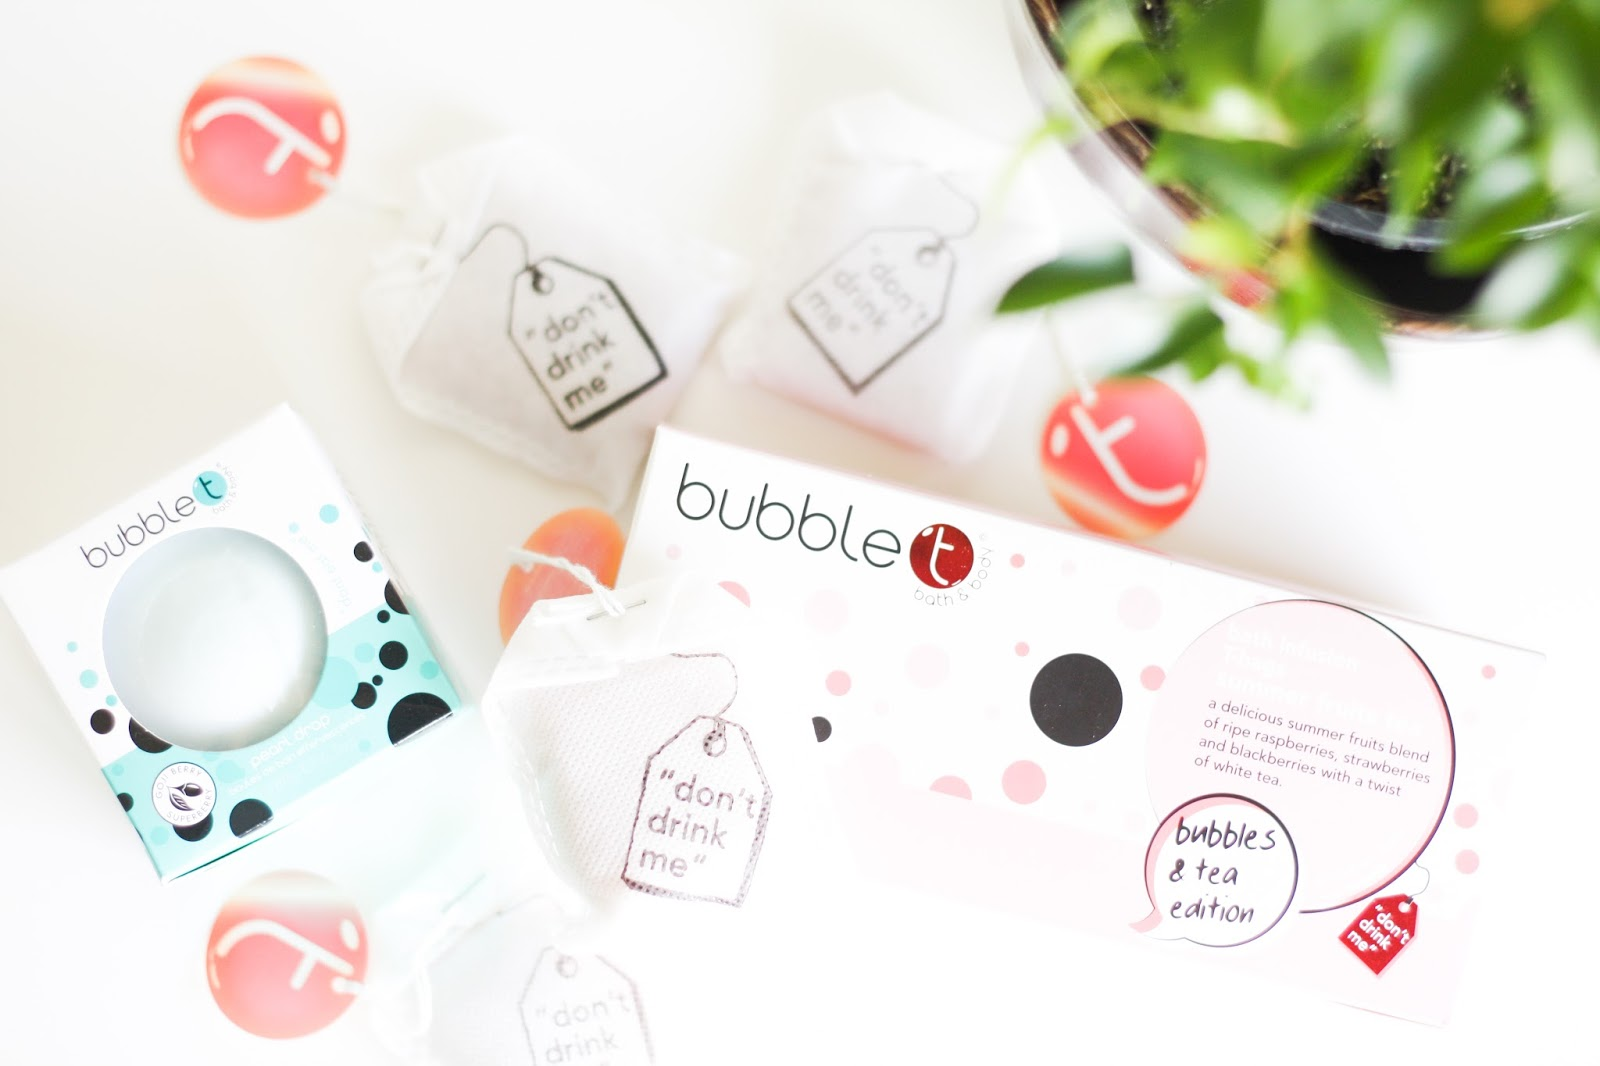 Bubble T bath products review